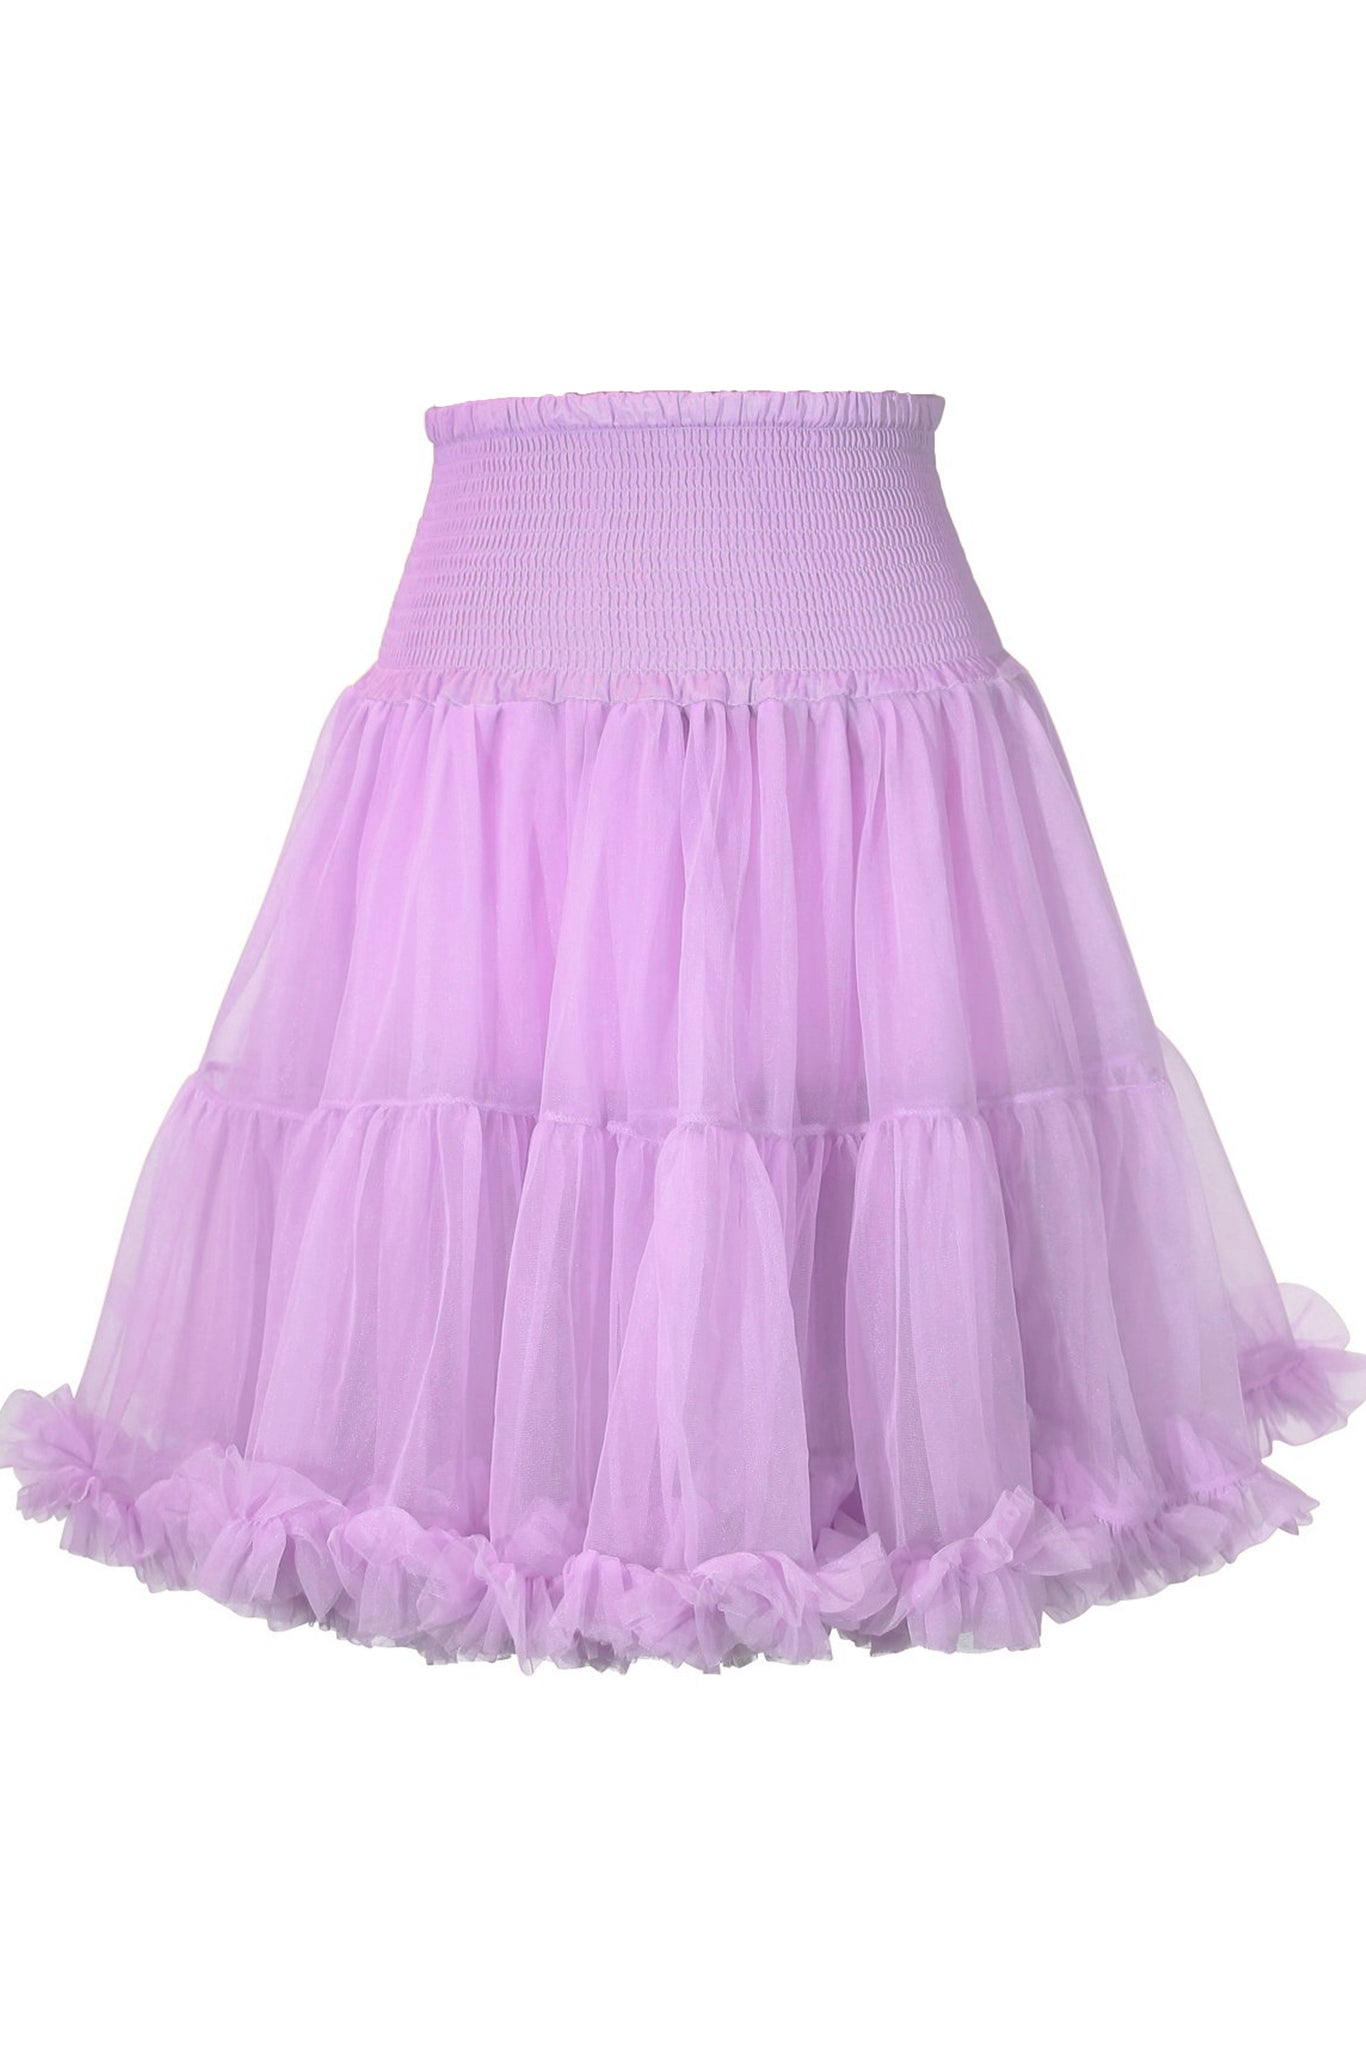 Luxury Shirred Petticoat (Lilac)